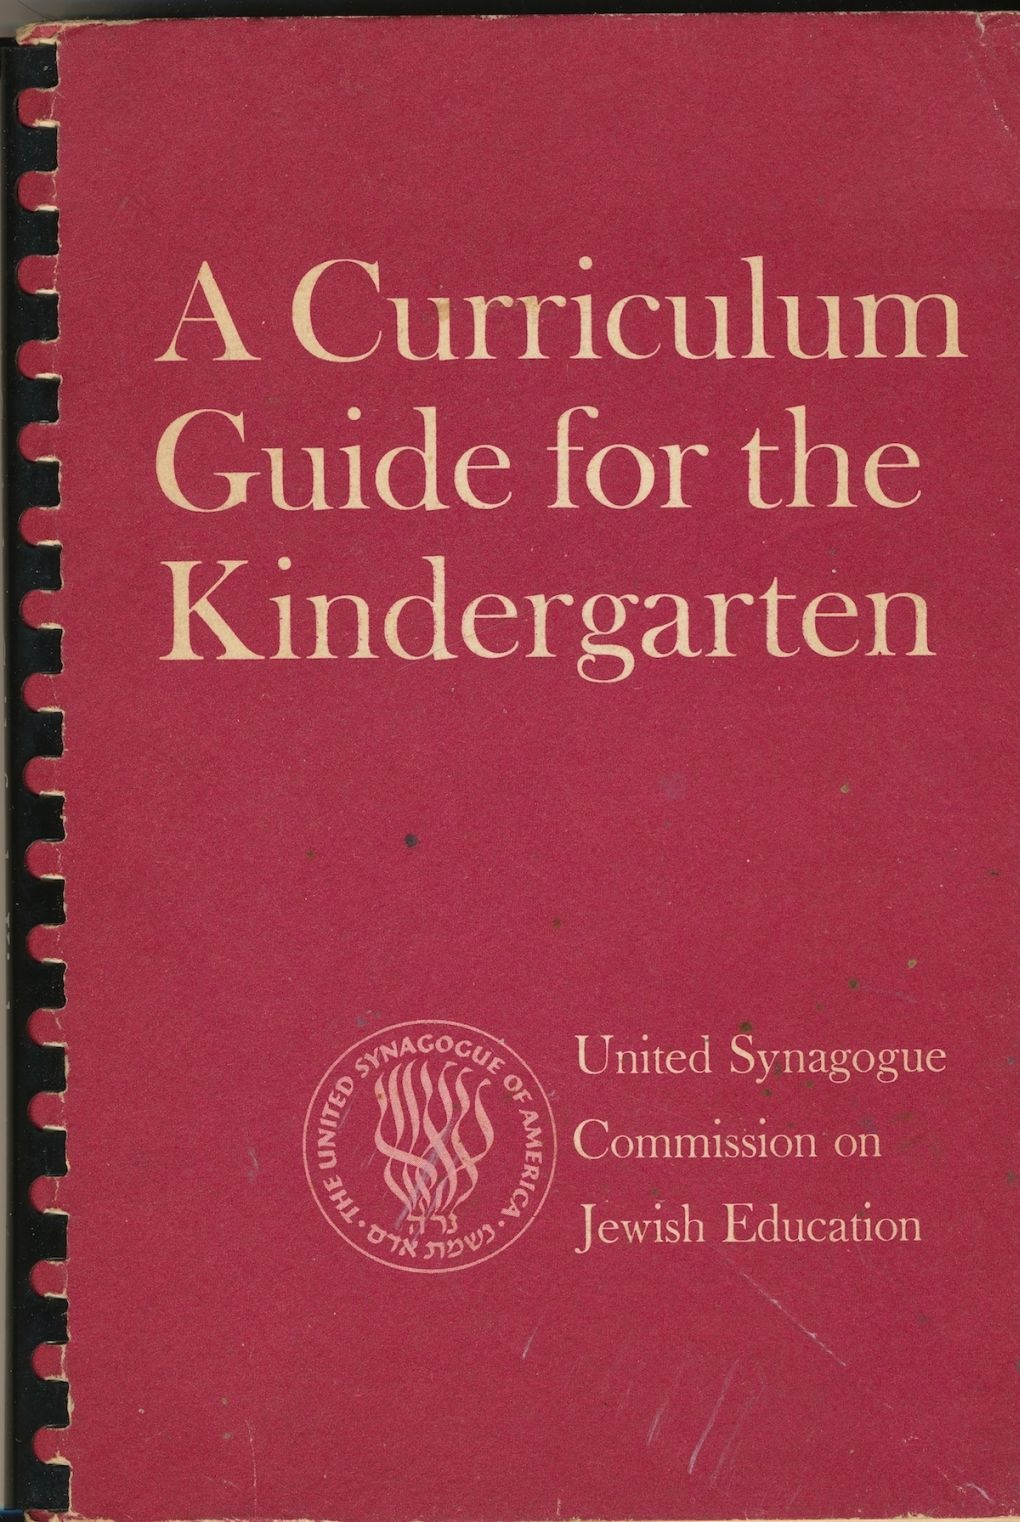 Image for A Curriculum Guide for the Kindergarten